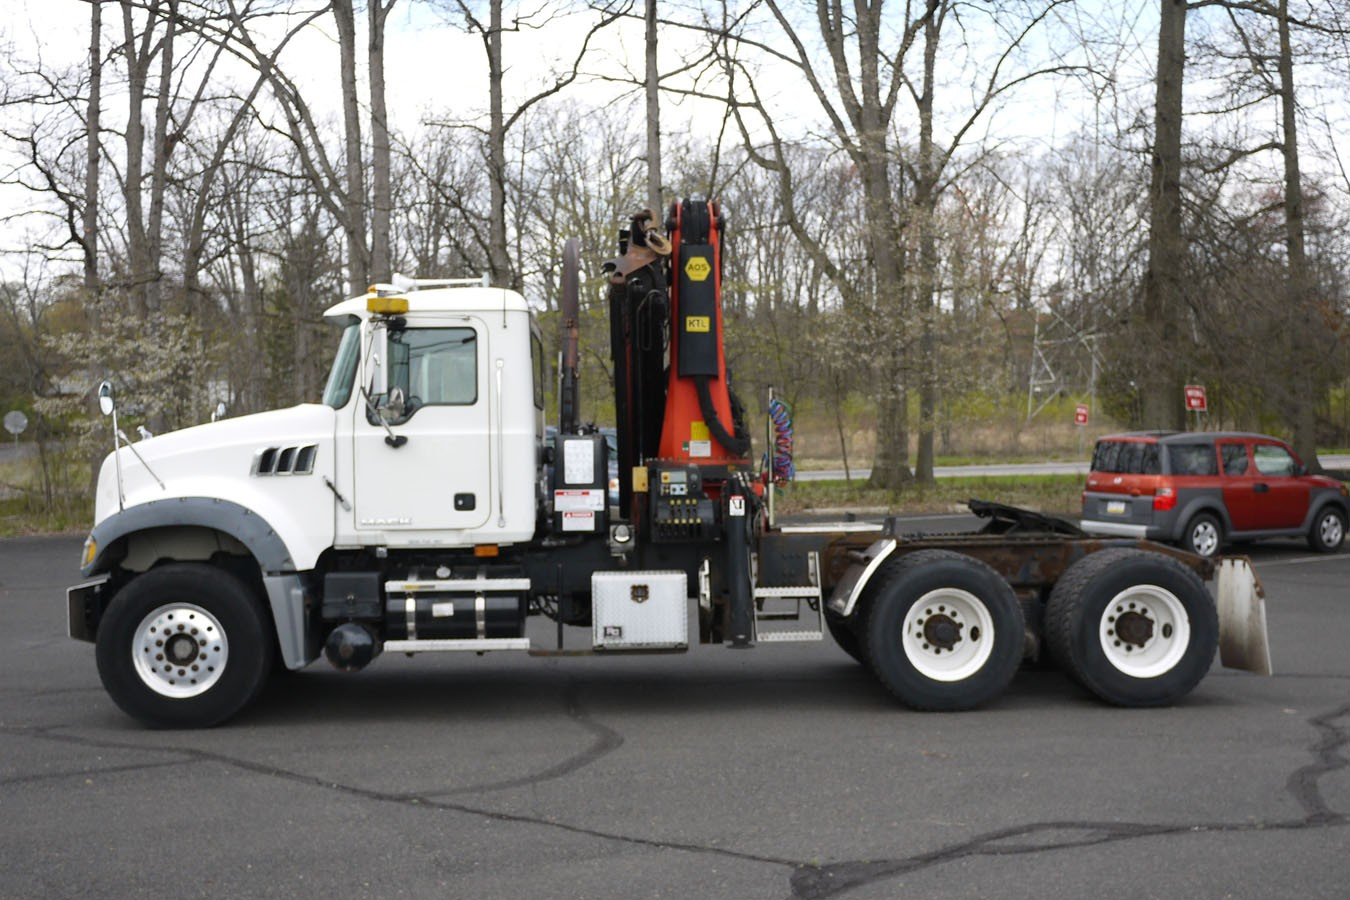 Used, 2008, Other, MACK CV713 TRACTOR W/ 2008 PALFINGER PK29002: 8.5 TON KNUCKLEBOOM TRUCK, Other